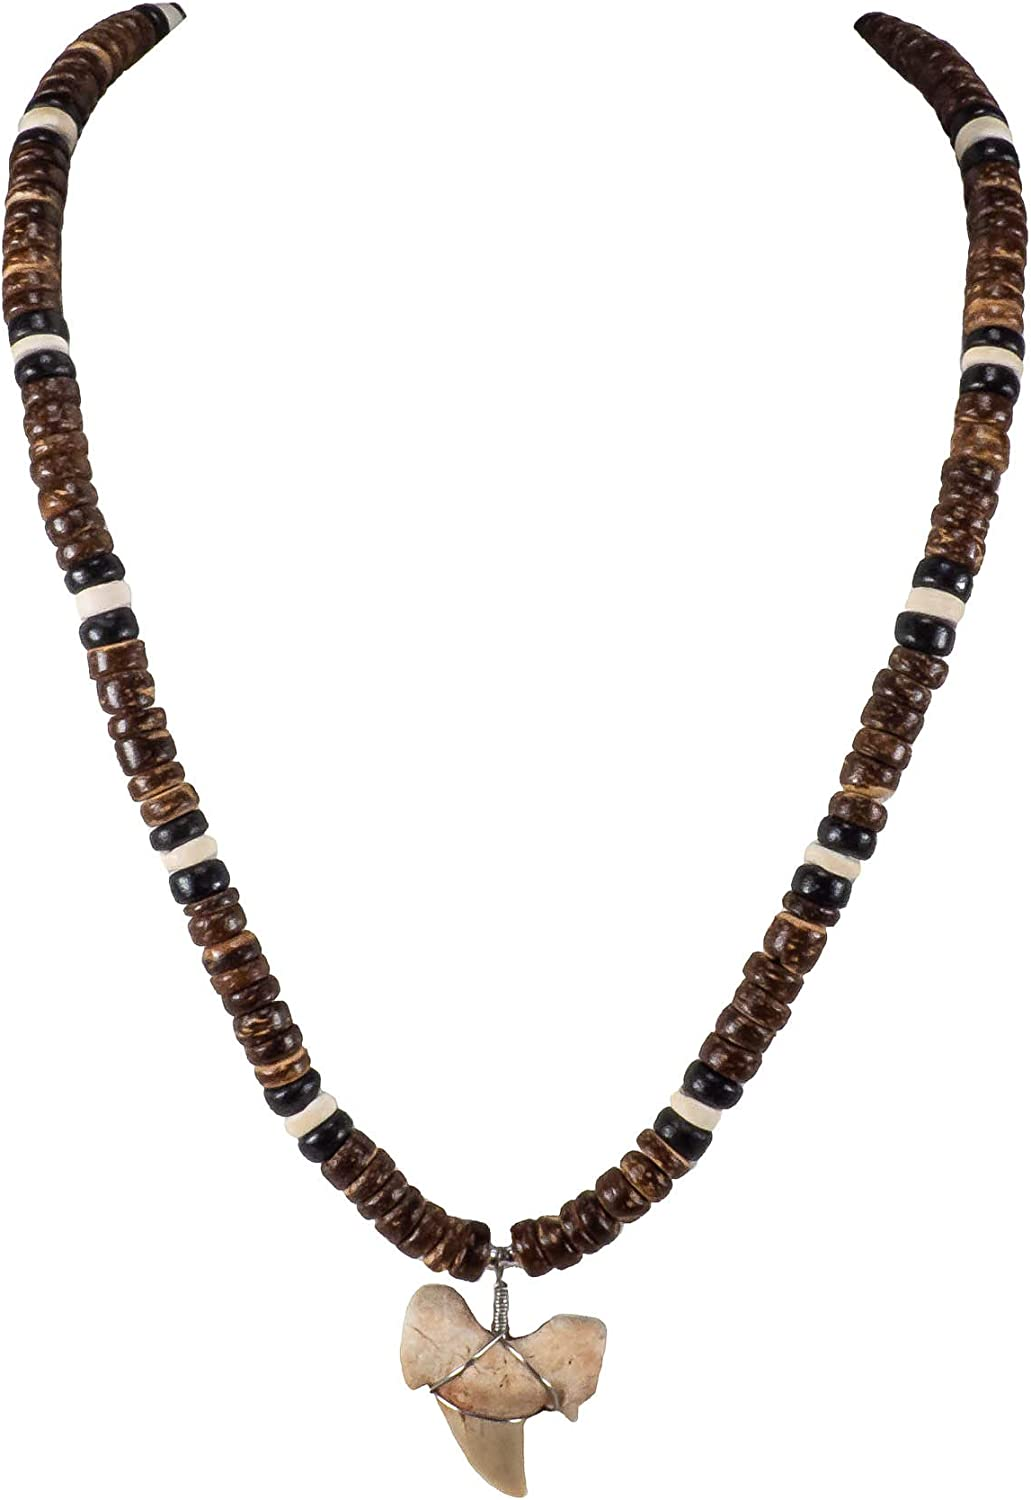 BlueRica Shark Tooth Pendant on Brown, Black & Natural Coconut Beads Necklace (3S)